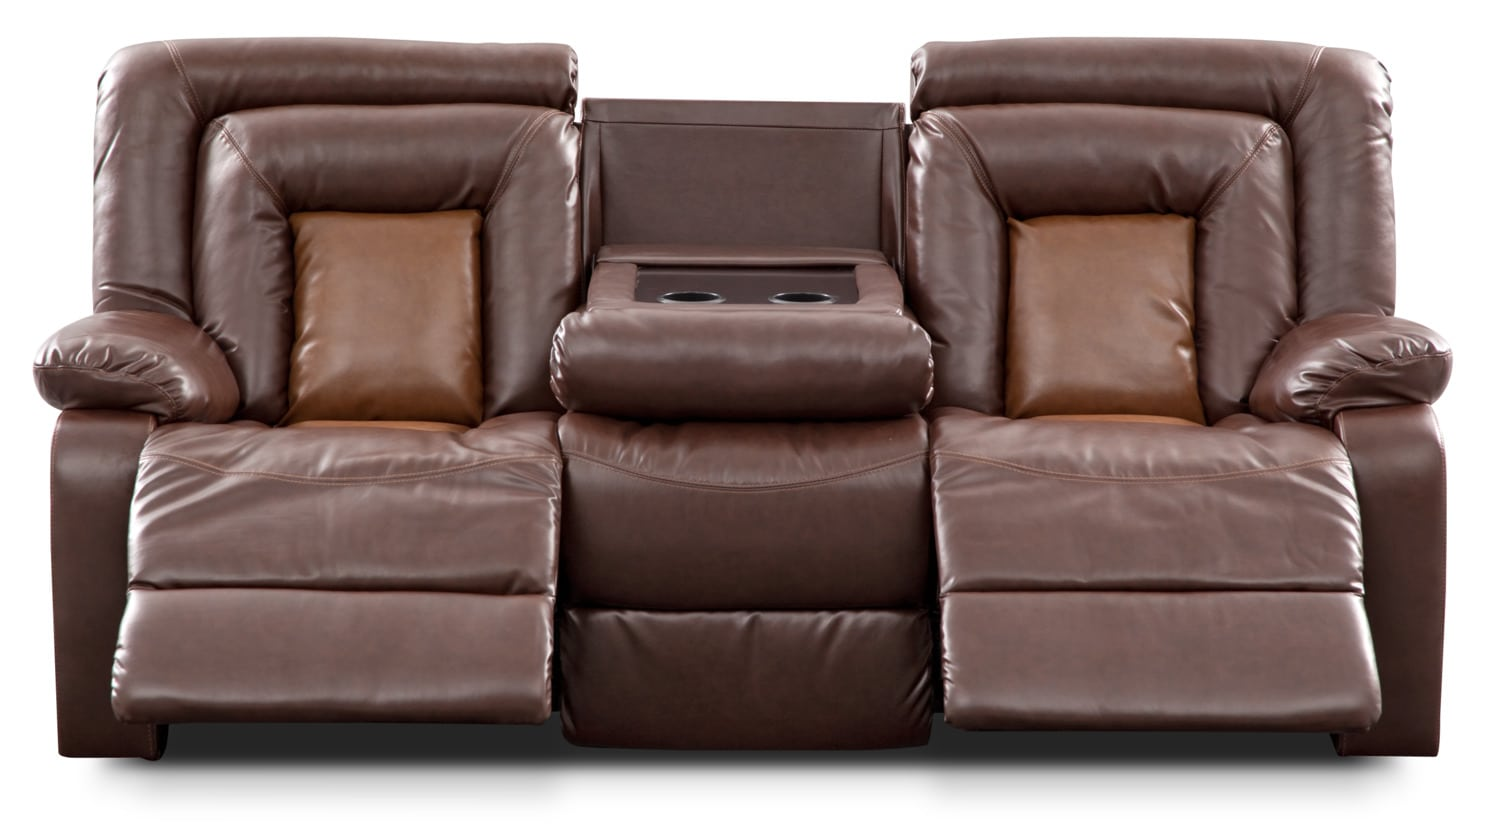 Dual Reclining Sofa Home Decor